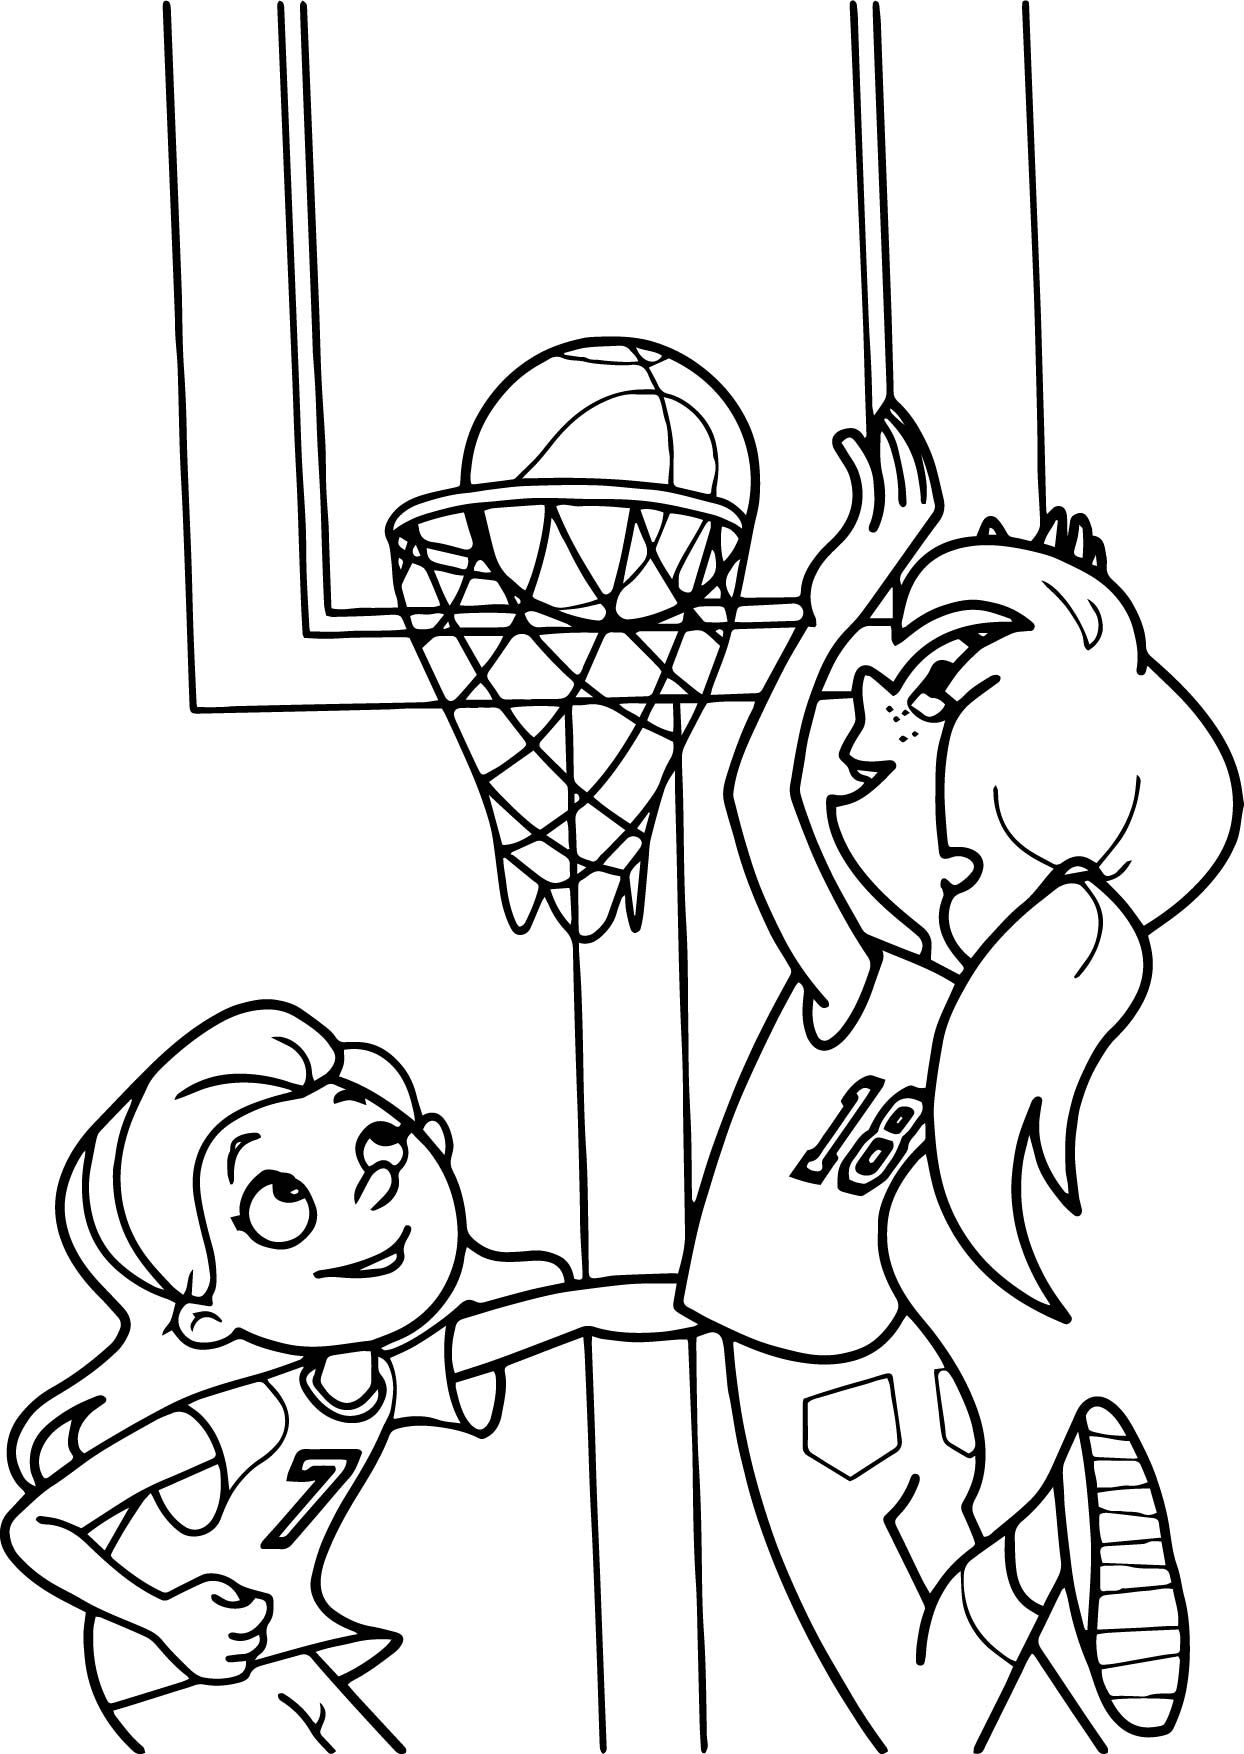 Girls Together Playing Basketball Coloring Page